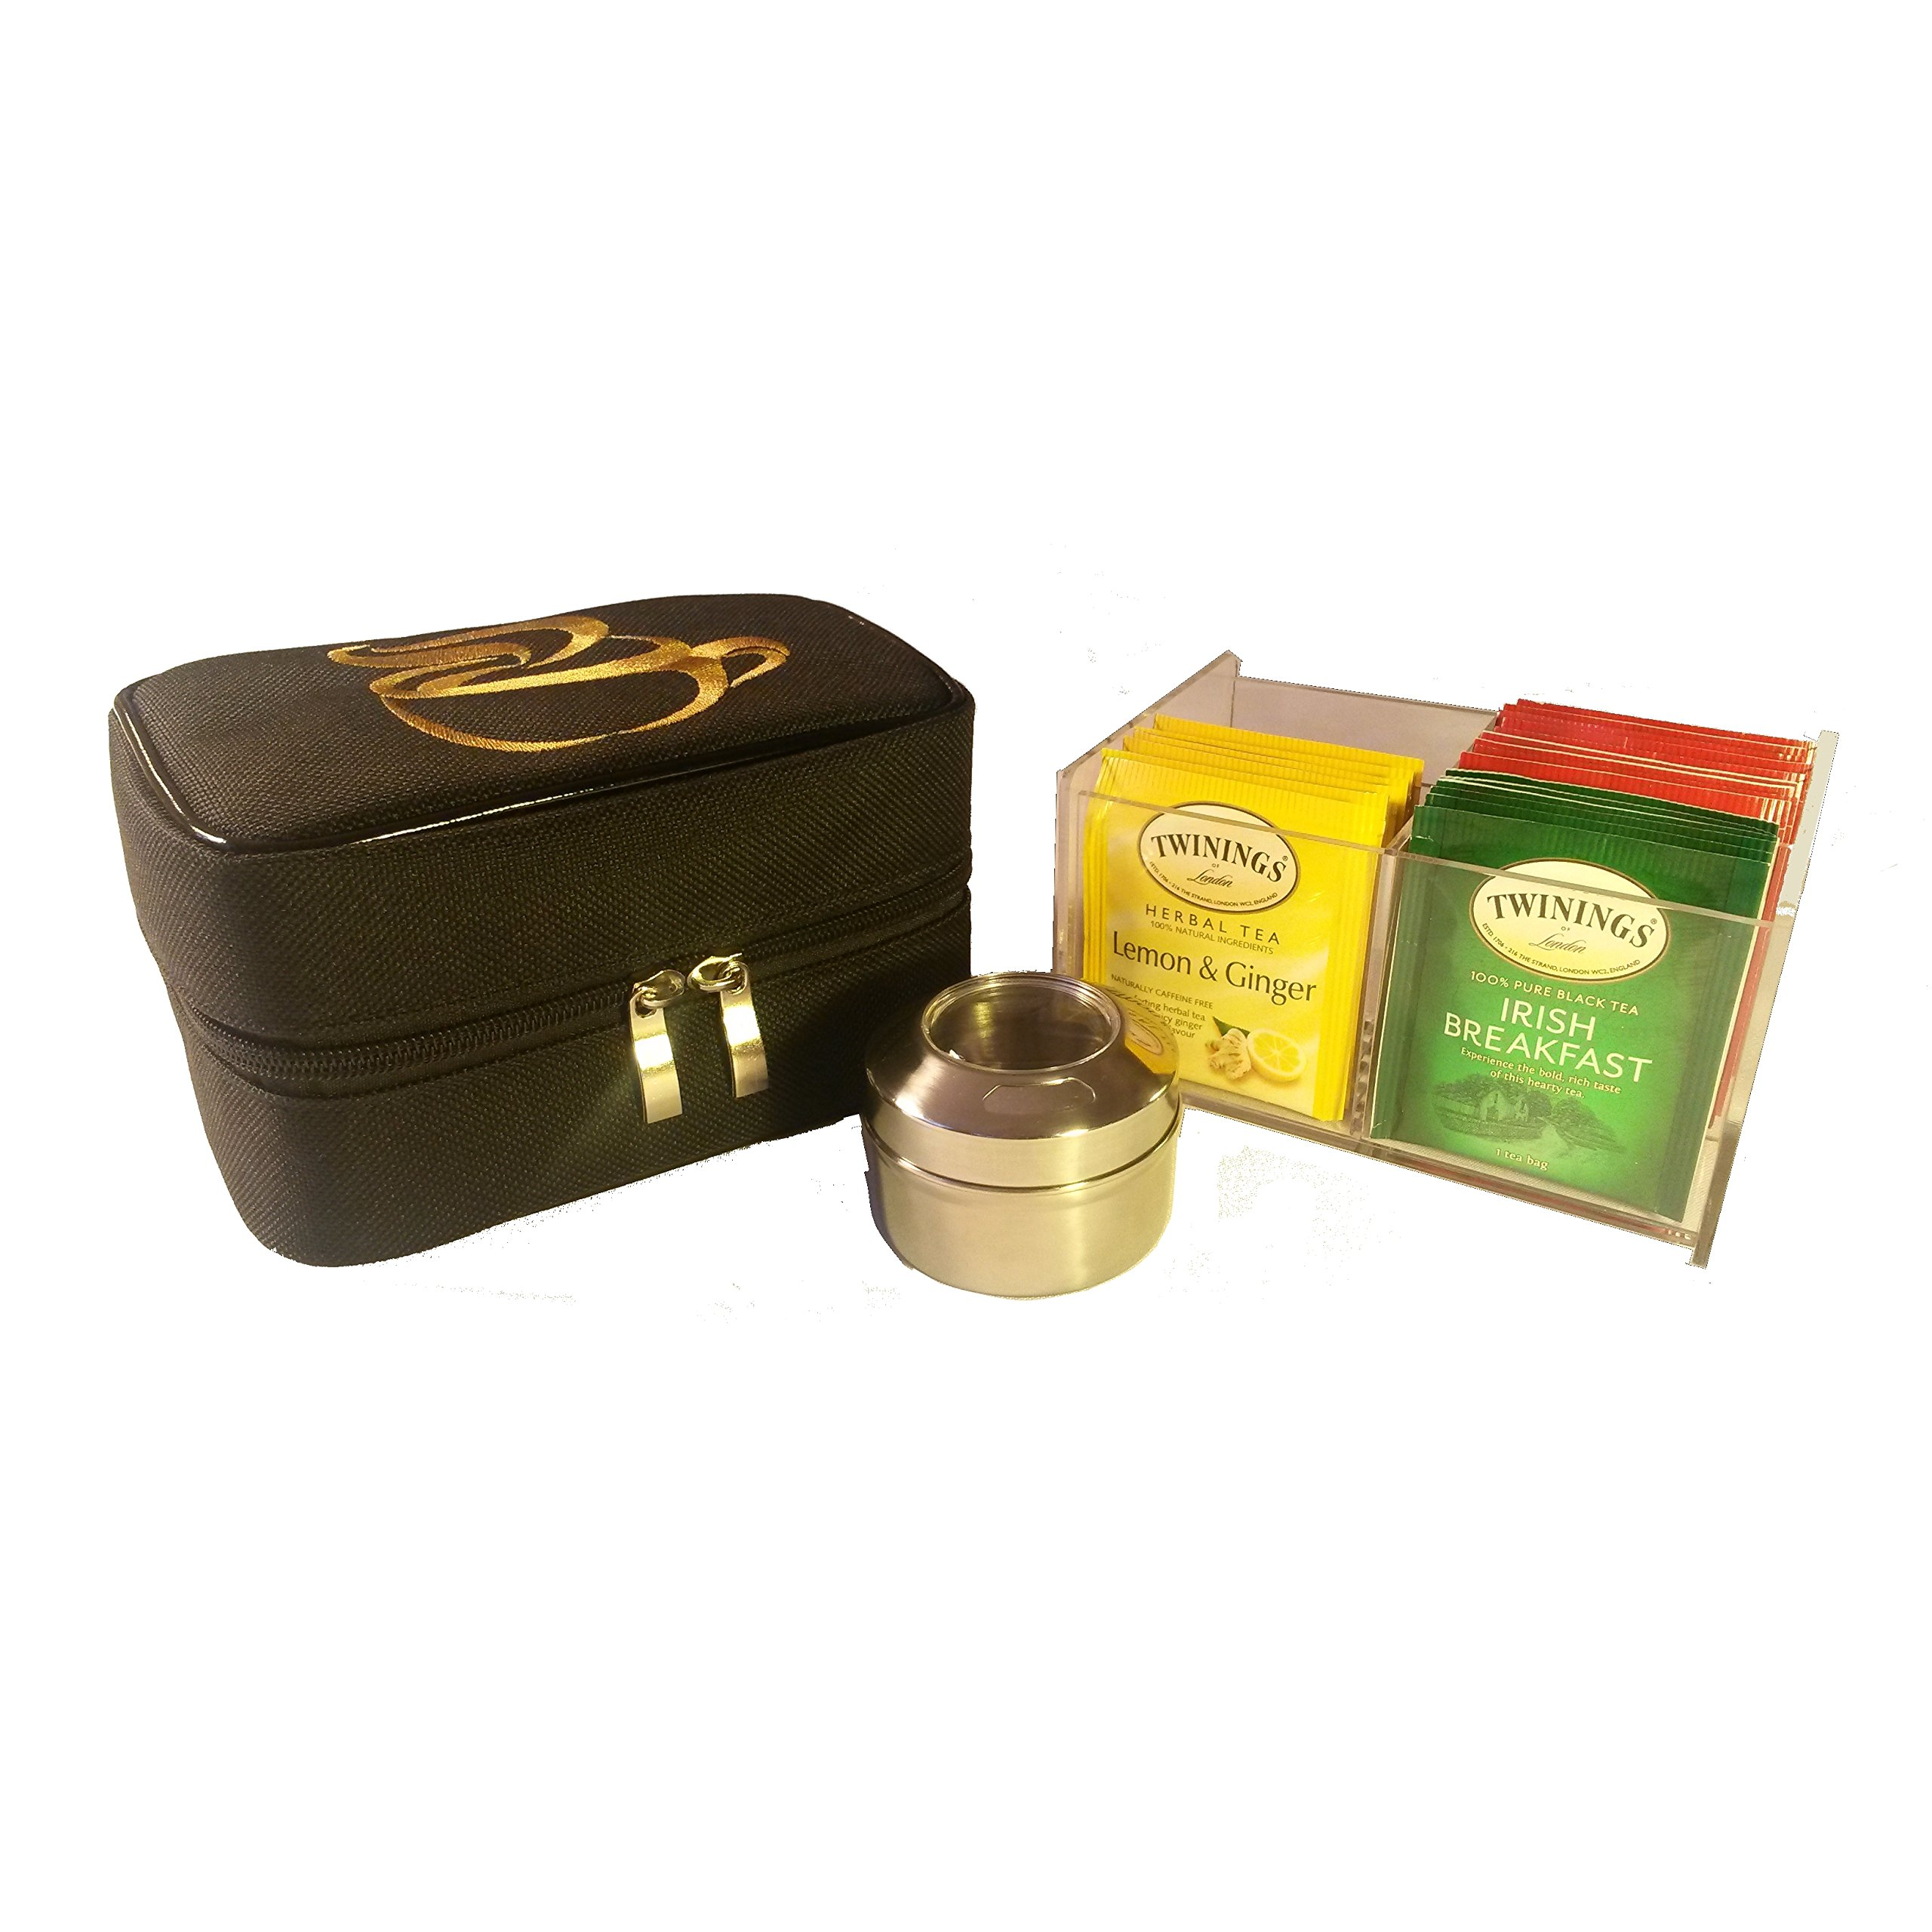 Teacaso Travel Tea Chest Organizer w/Tea Bags and Spice Jar - Great for Home, Office, Travel!